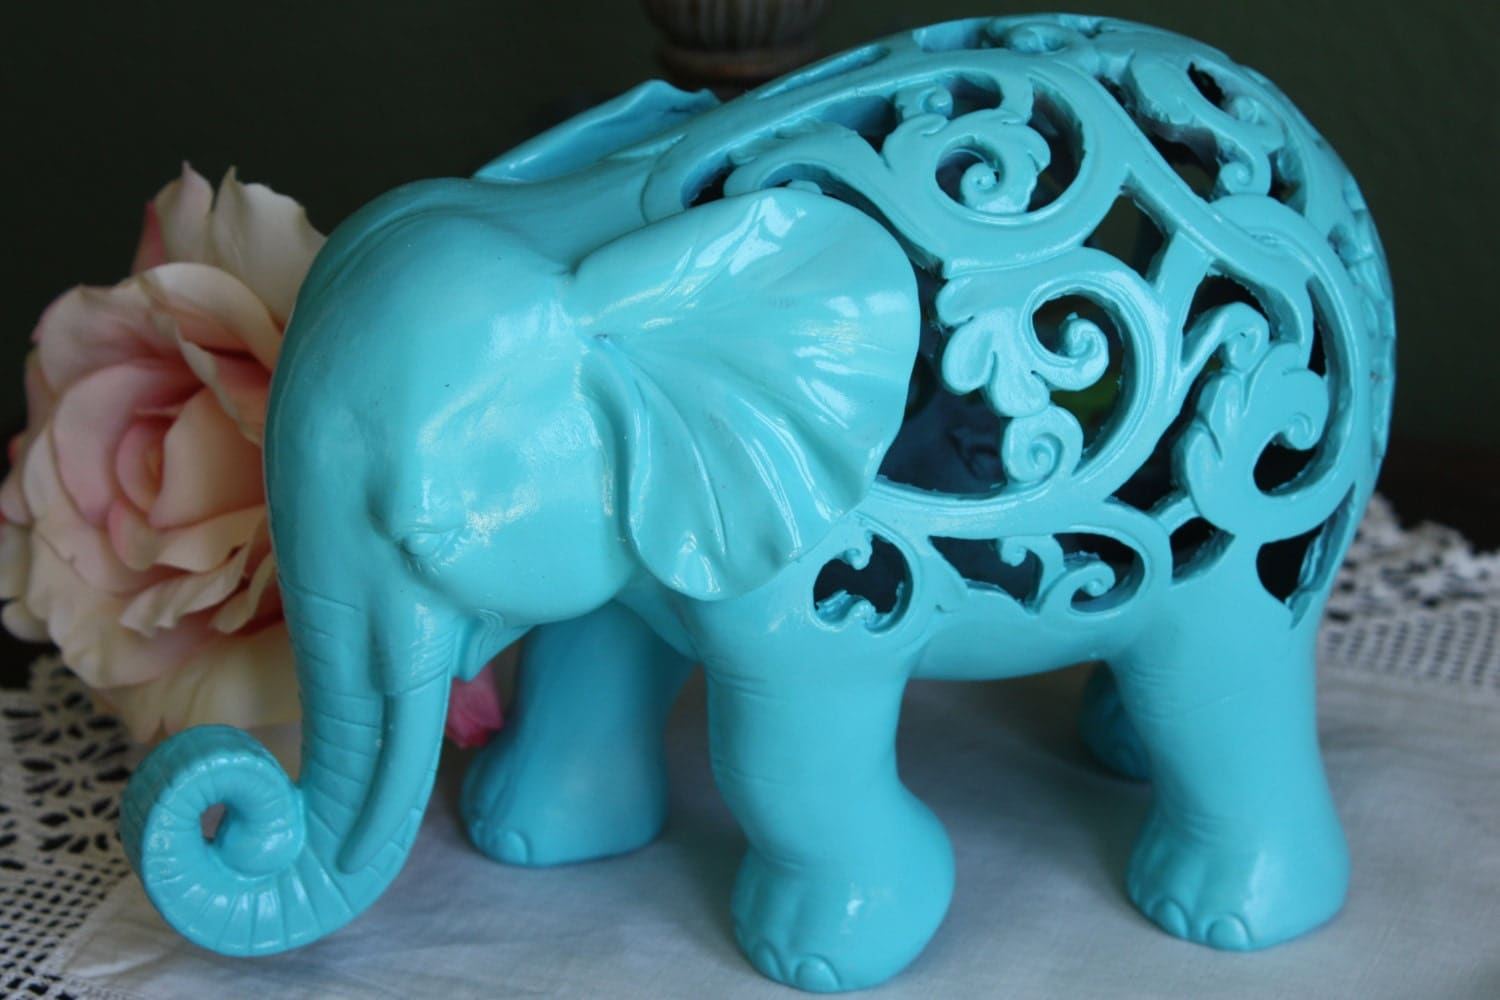 Pick Your Color Ornate Elephant Figurine Home Decor Animal